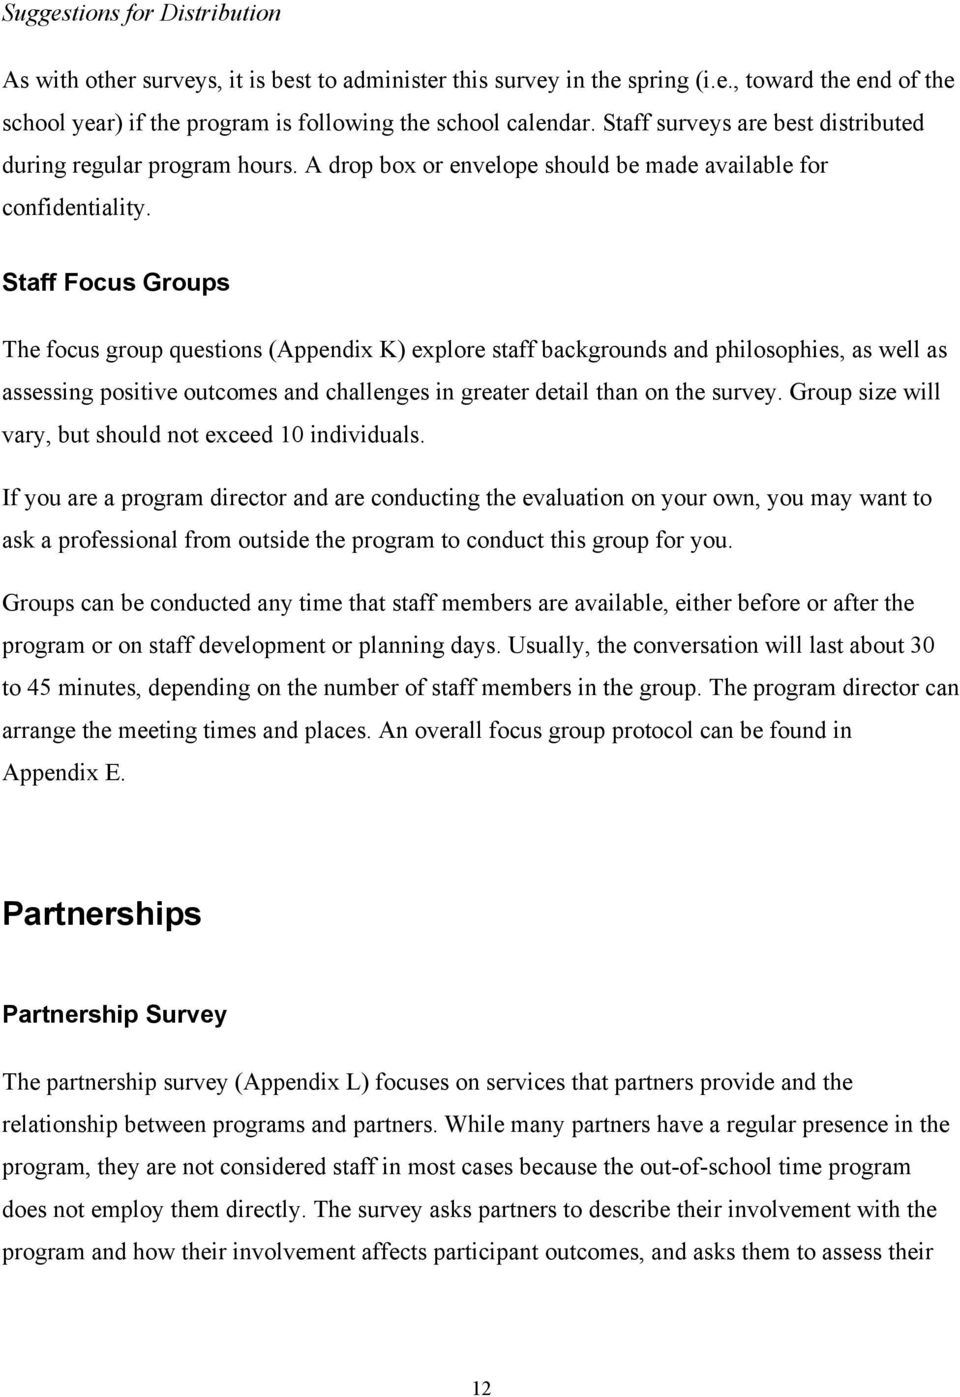 Staff Focus Groups The focus group questions (Appendix K) explore staff backgrounds and philosophies, as well as assessing positive outcomes and challenges in greater detail than on the survey.